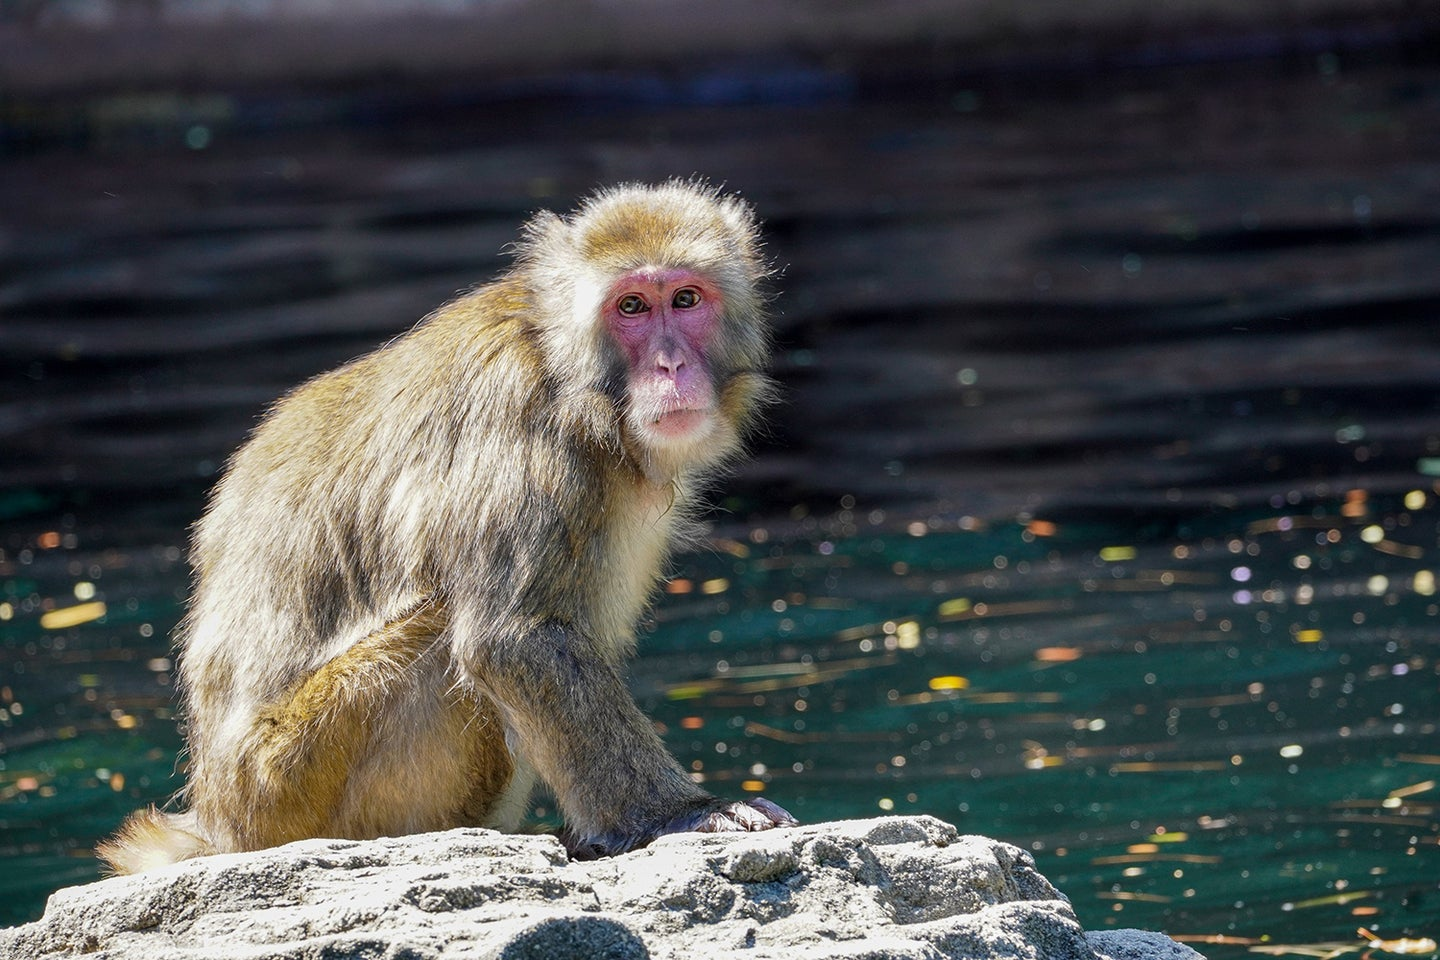 monkey by the water